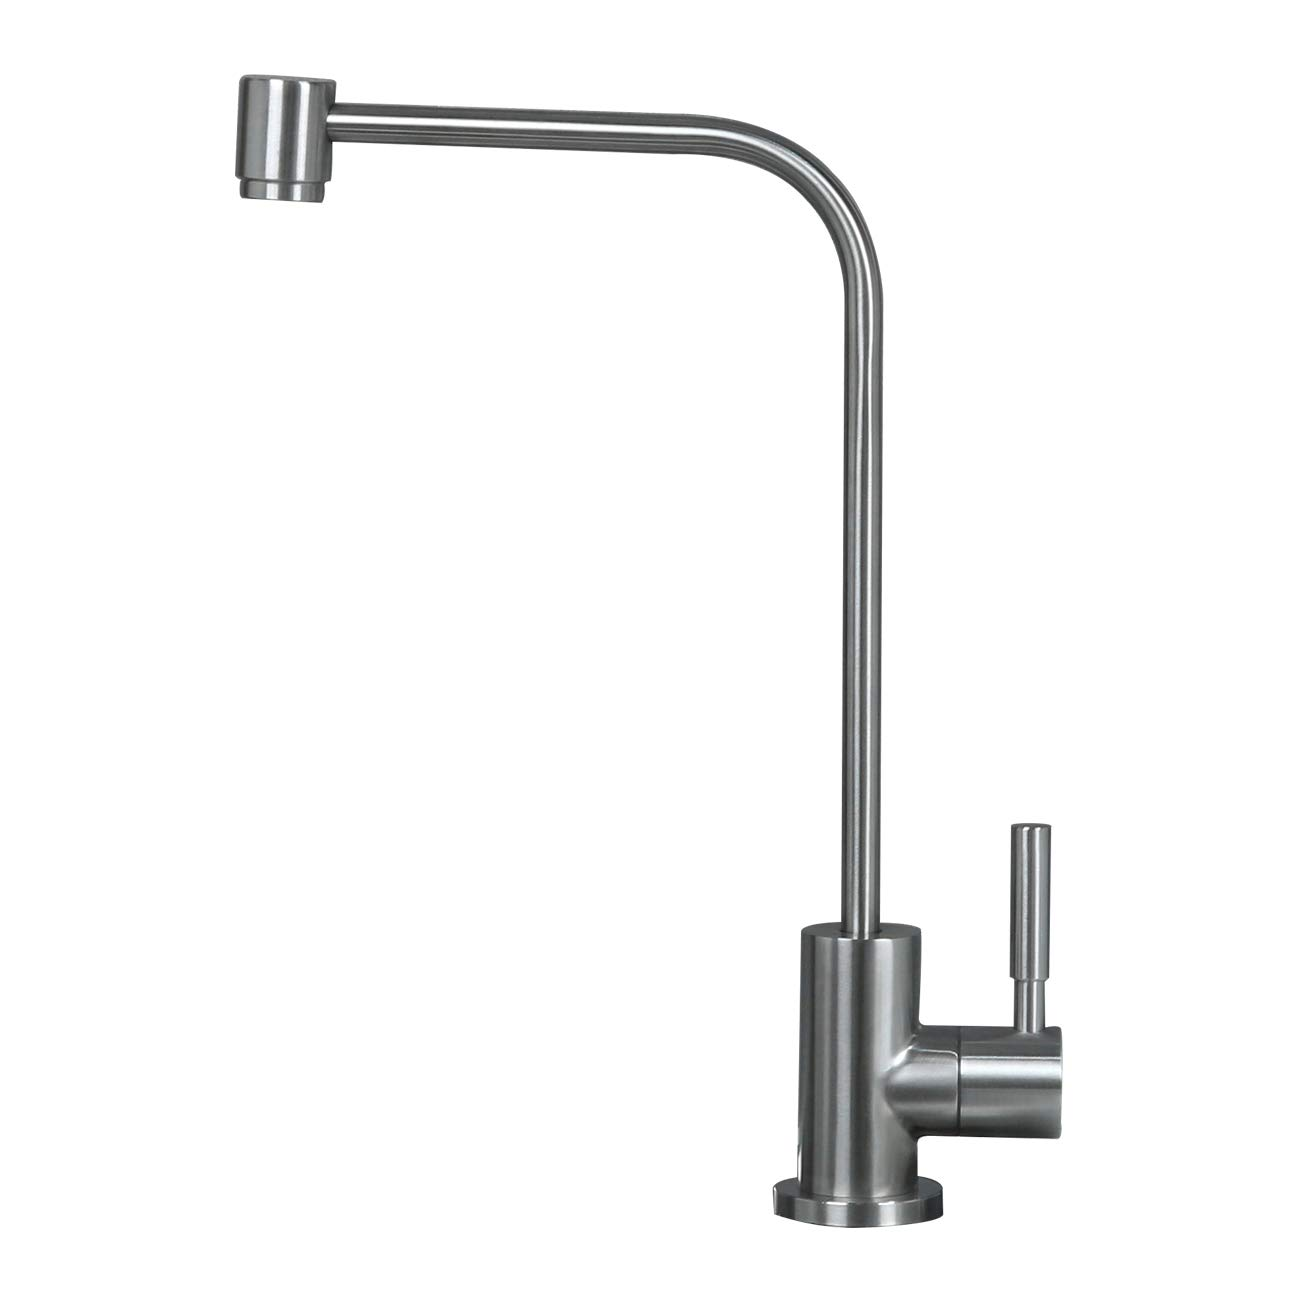 Stainless Steel Kitchen bar Sink Drinking Water filter Faucet, Fits all reverse osmosis water filtration system, Lead-Free, Brushed, Single Handle by MINGOR (Image #1)